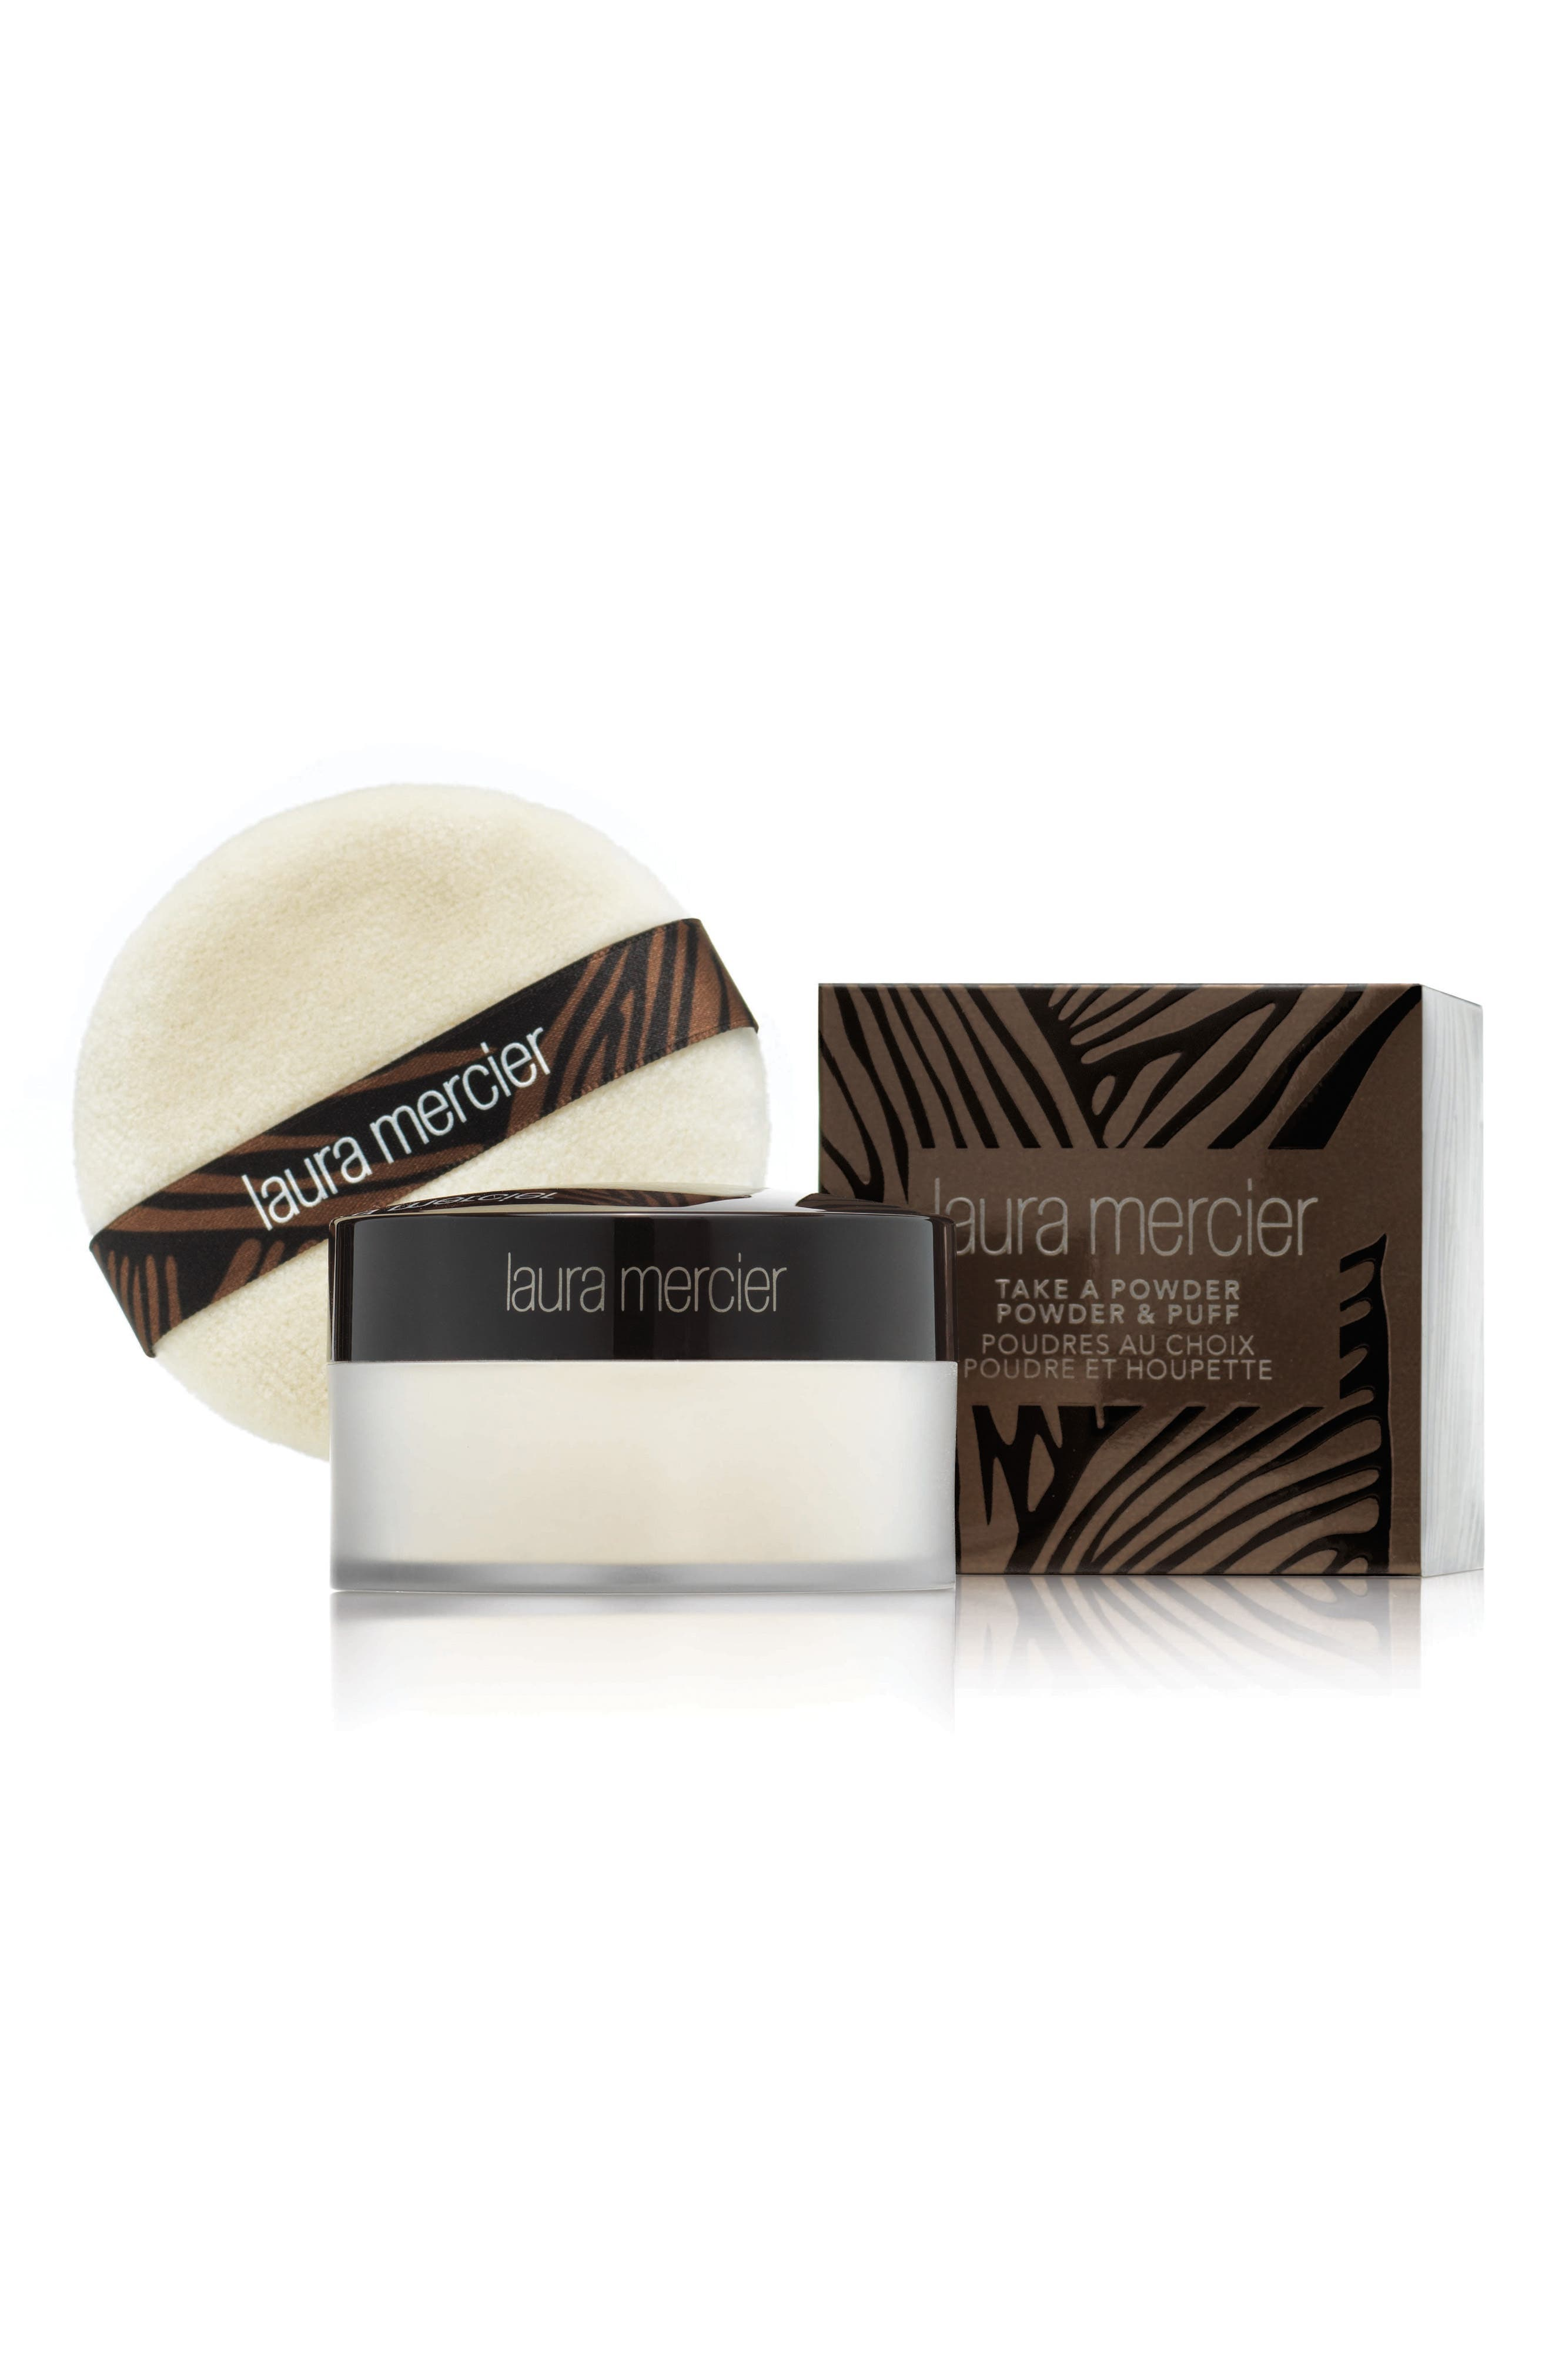 Laura Mercier Take a Powder Translucent Loose Setting Powder with Puff ($53 Value)